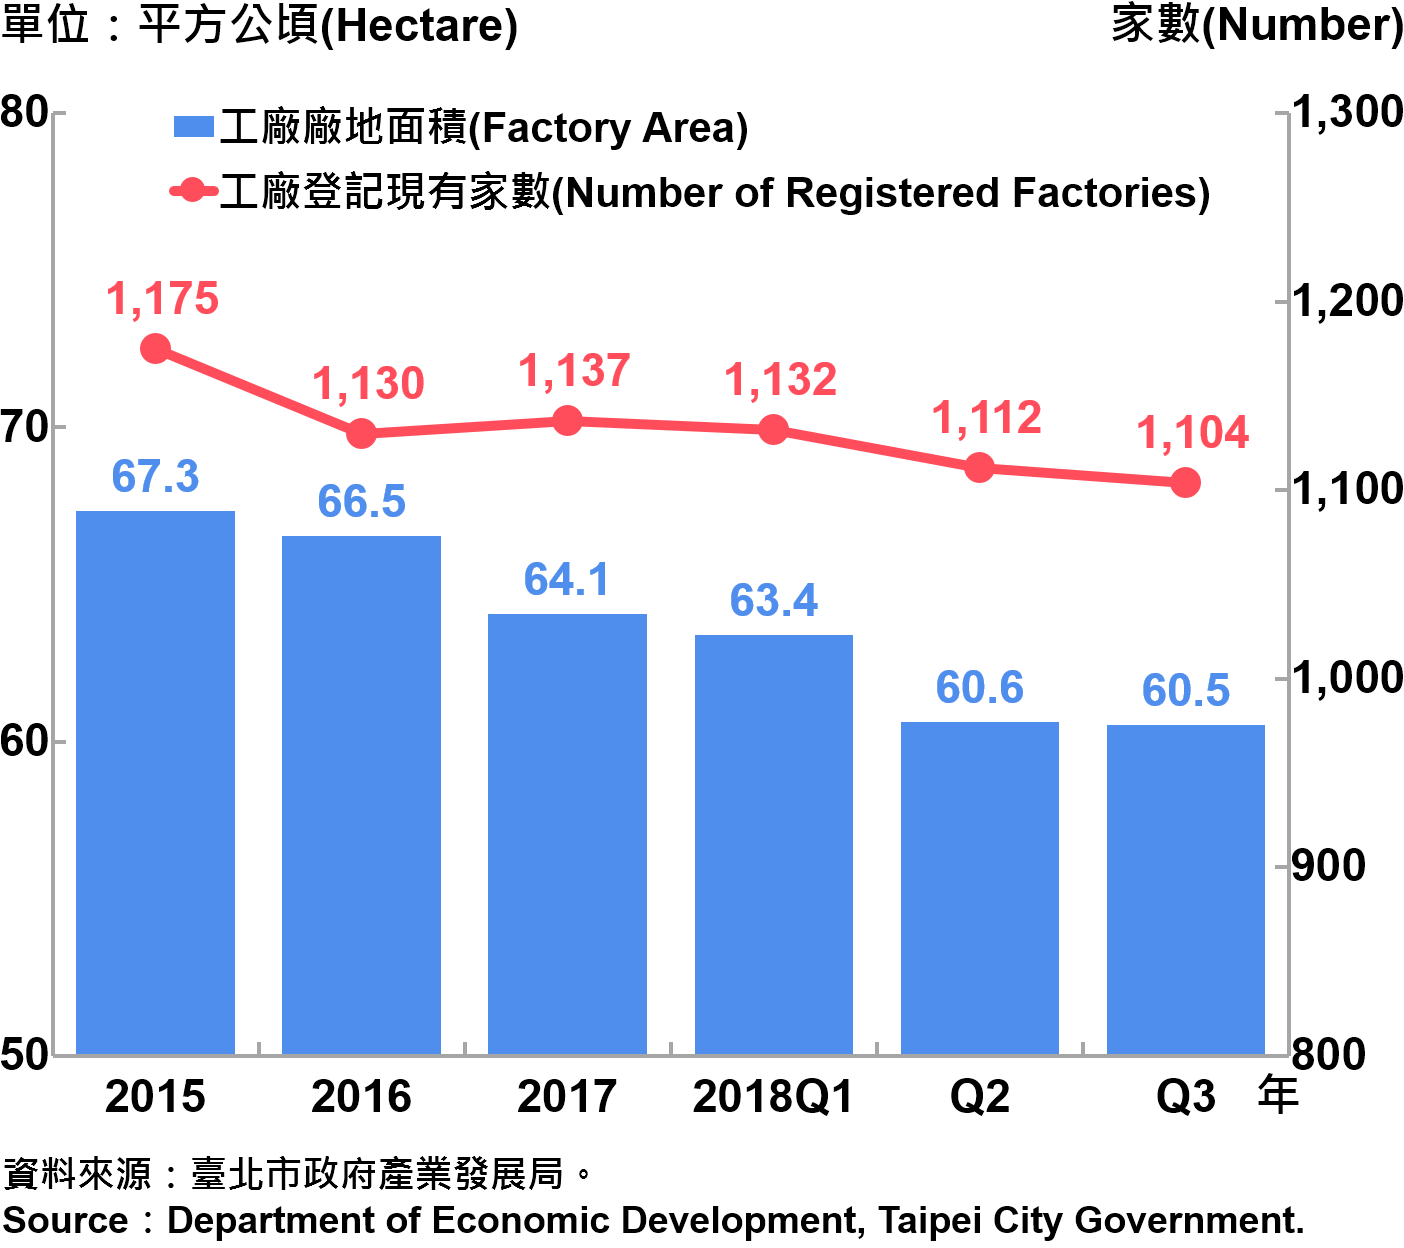 臺北市工廠登記家數及廠地面積—2018Q3 Number of Factories Registered and Factory Lands in Taipei—2018Q3